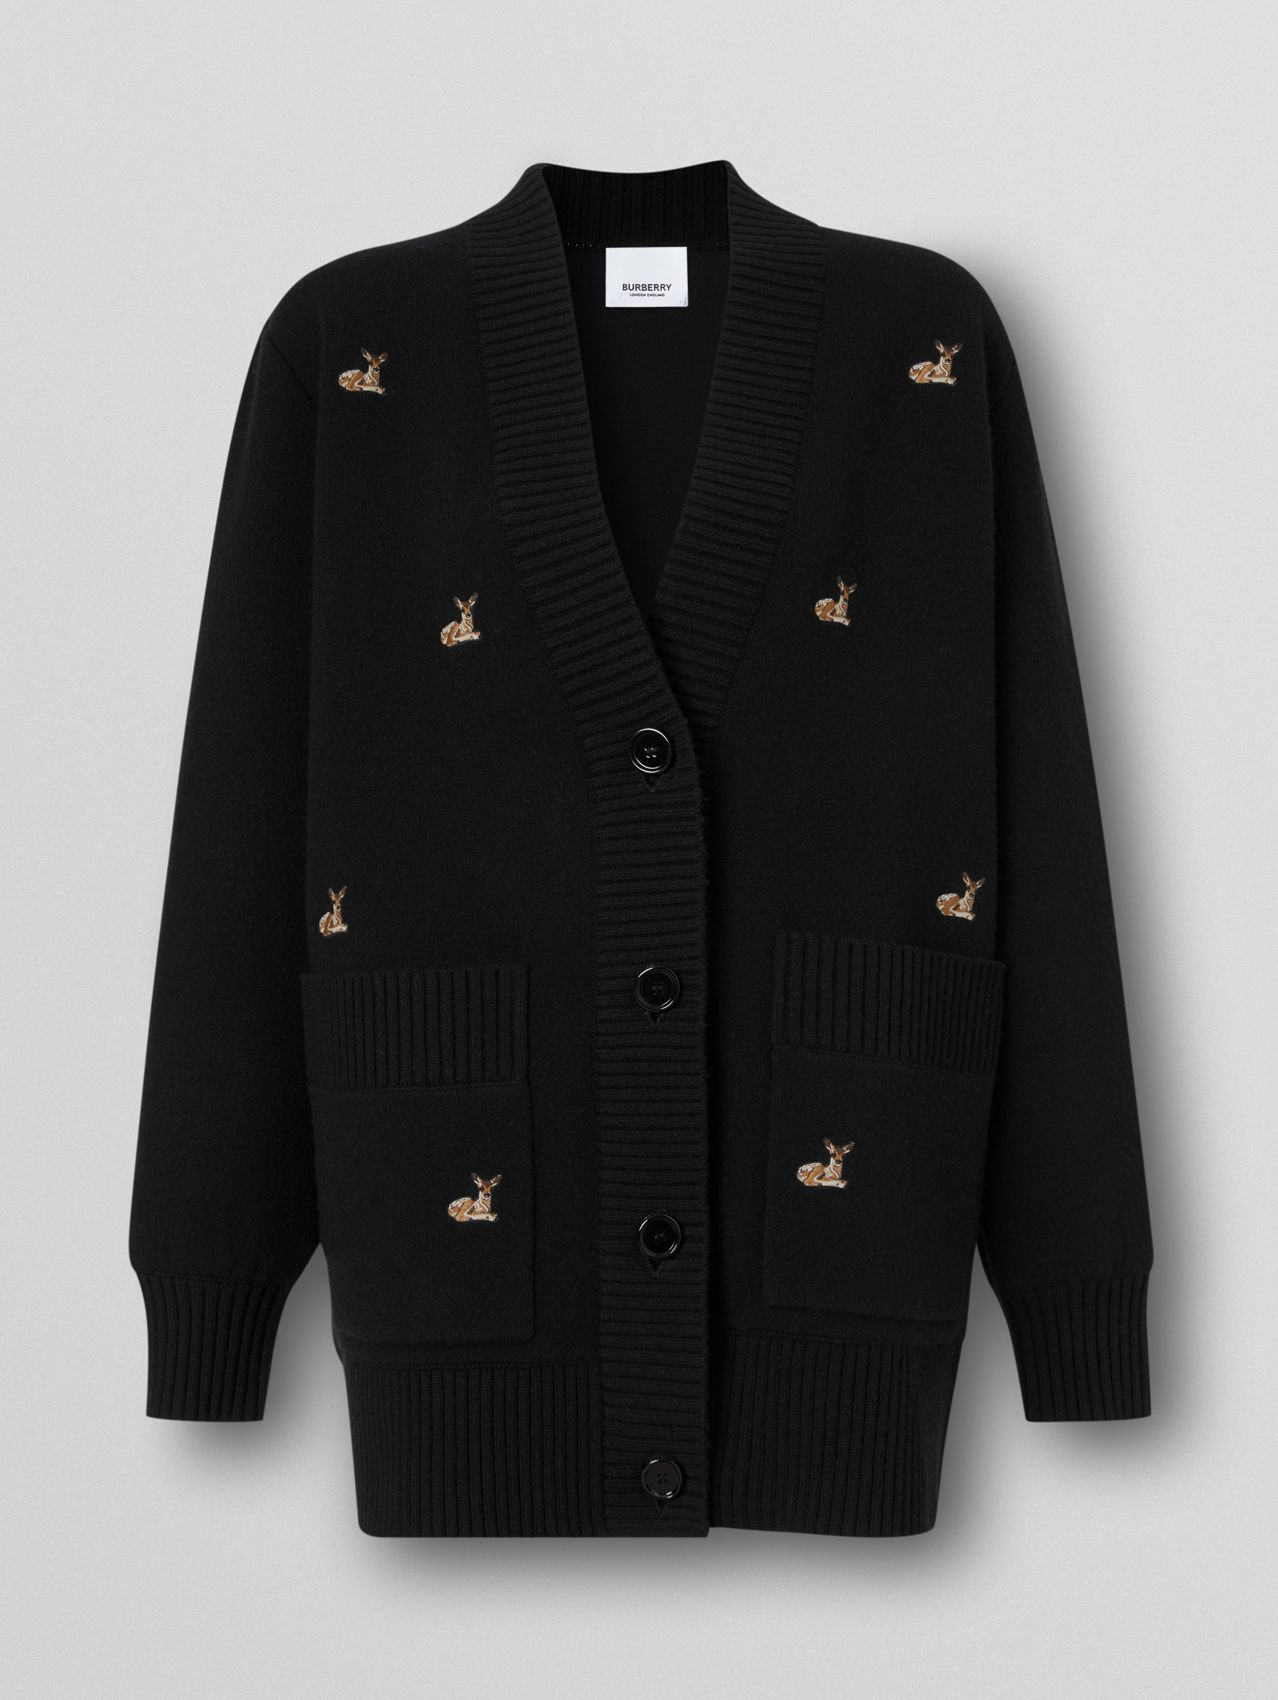 Deer Motif Wool Cashmere Blend Oversized Cardigan (Black)